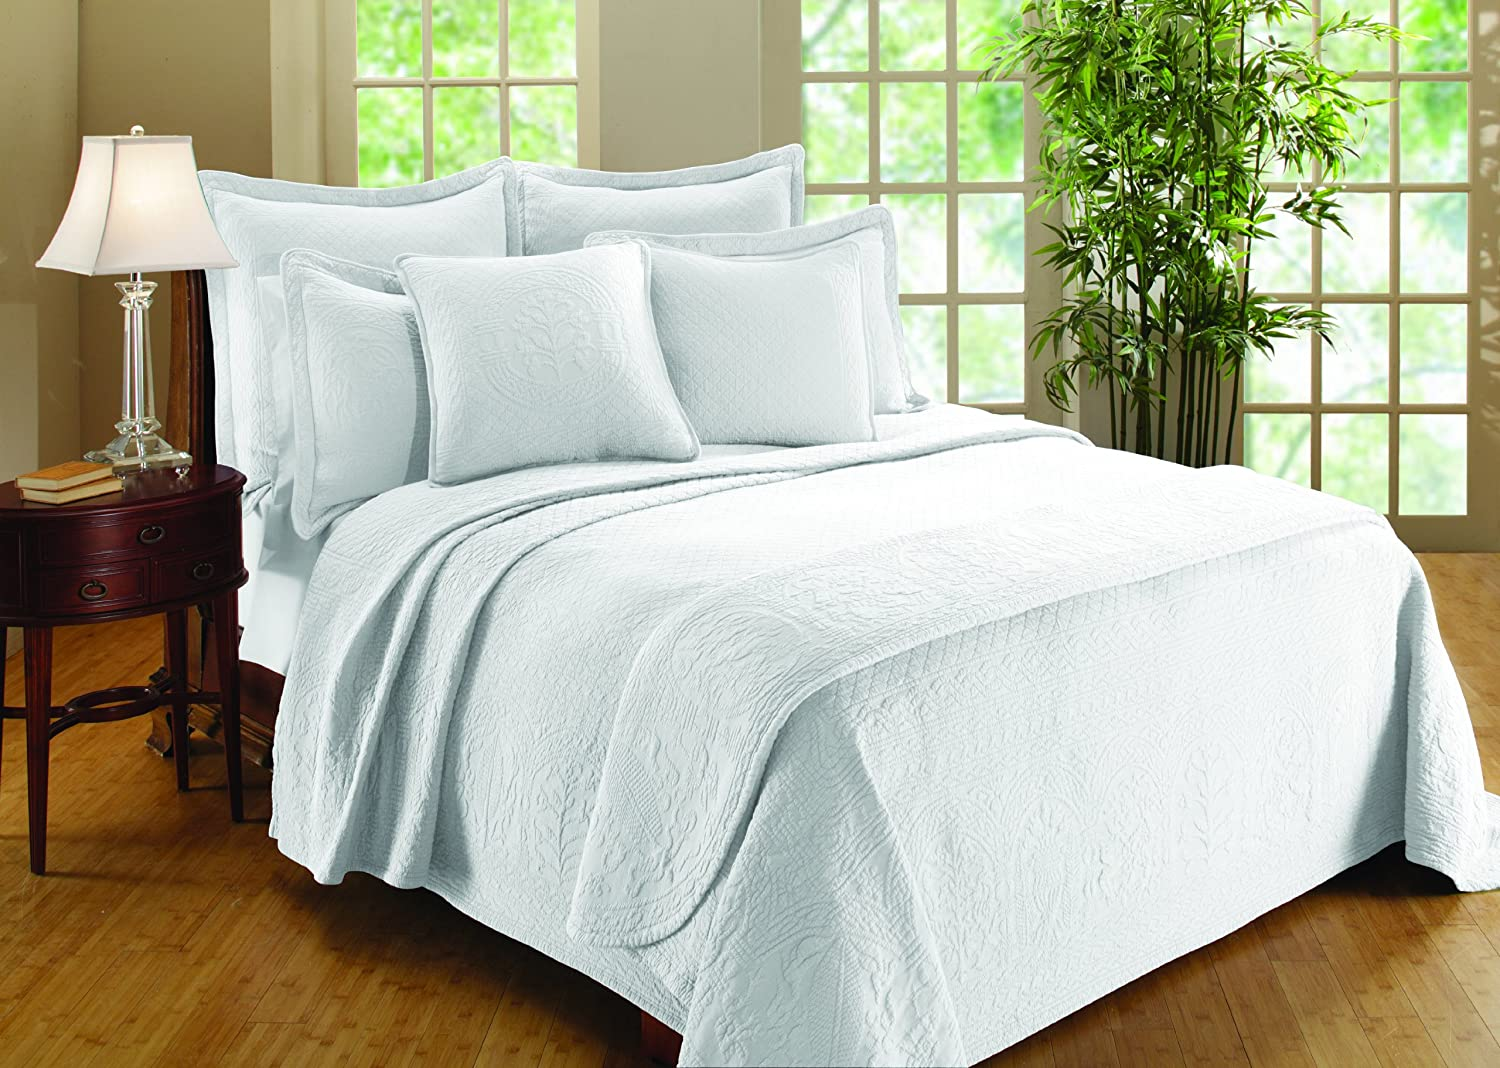 Royal Heritage Home Williamsburg William and Mary Matelasse Queen Coverlet, White